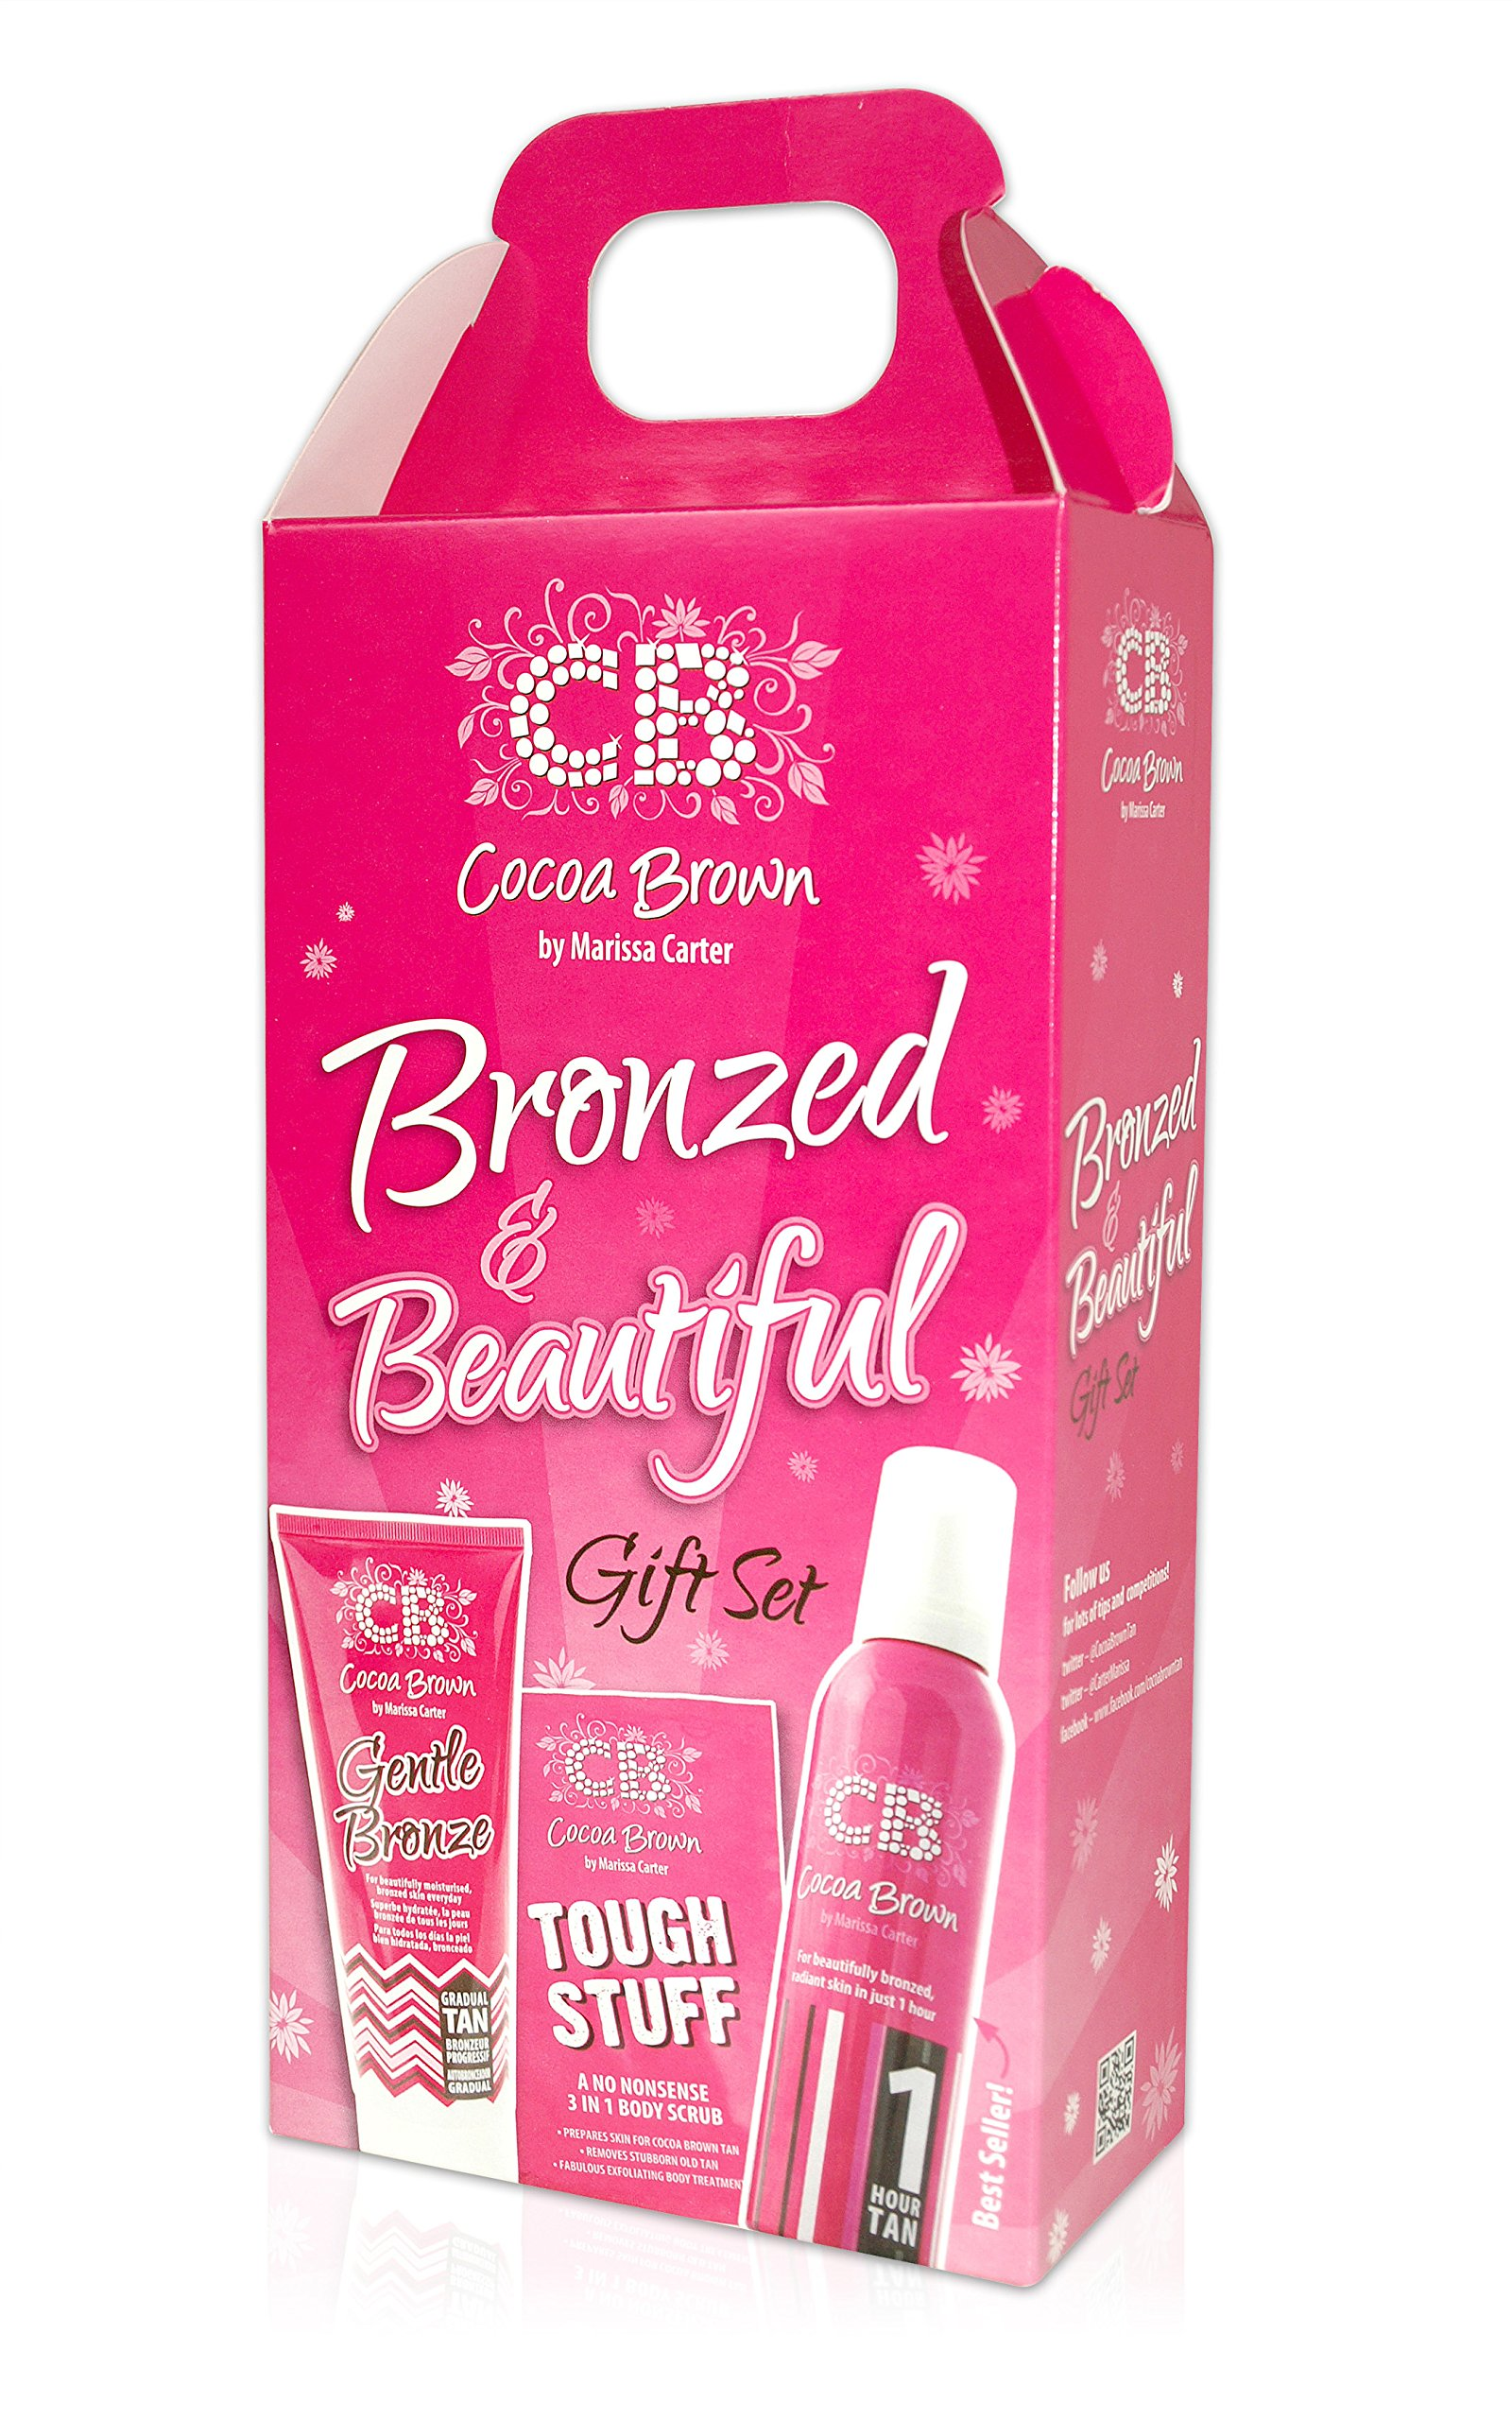 Cocoa Brown Be Bronzed & Beautiful Gift Set